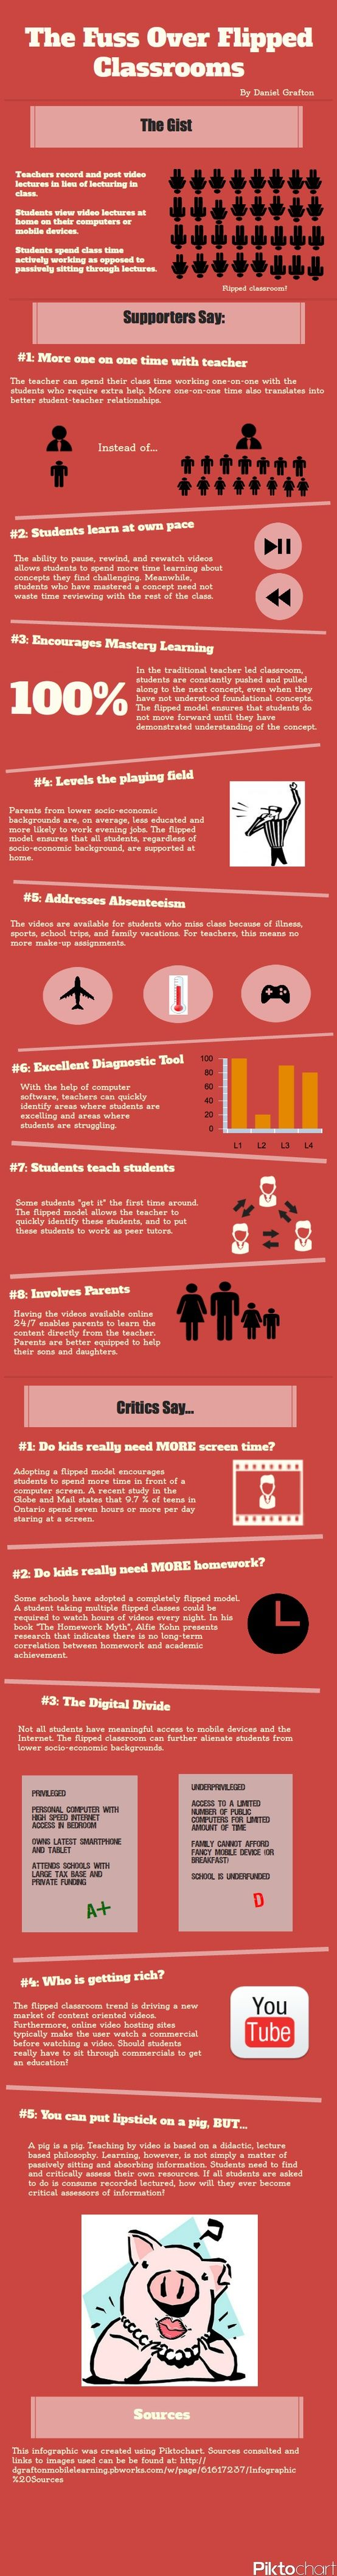 What Is The Flipped Classroom Model And Why Is It Amazing? (With Infographic) - Forbes